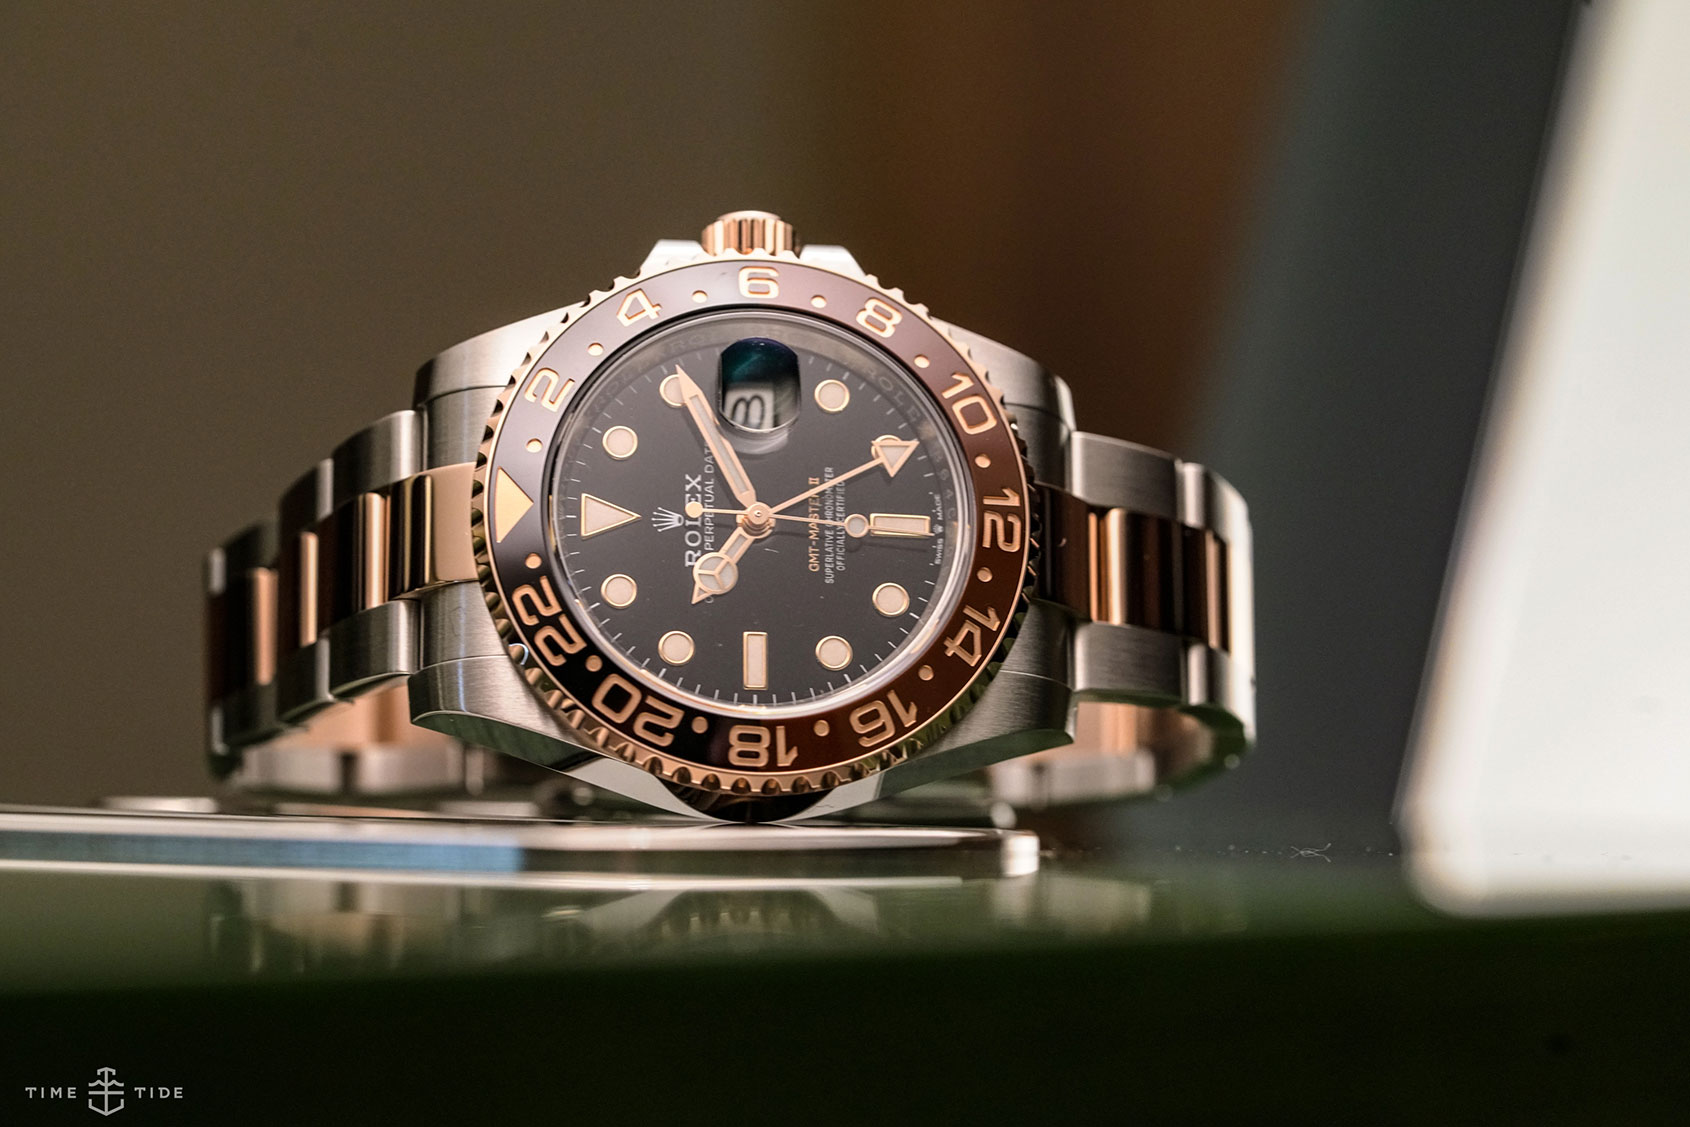 VIDEO: While all eyes are on the Pepsi, here's the Rolex GMT-Master II in Oystersteel and Everose (ref. 126711CHNR)